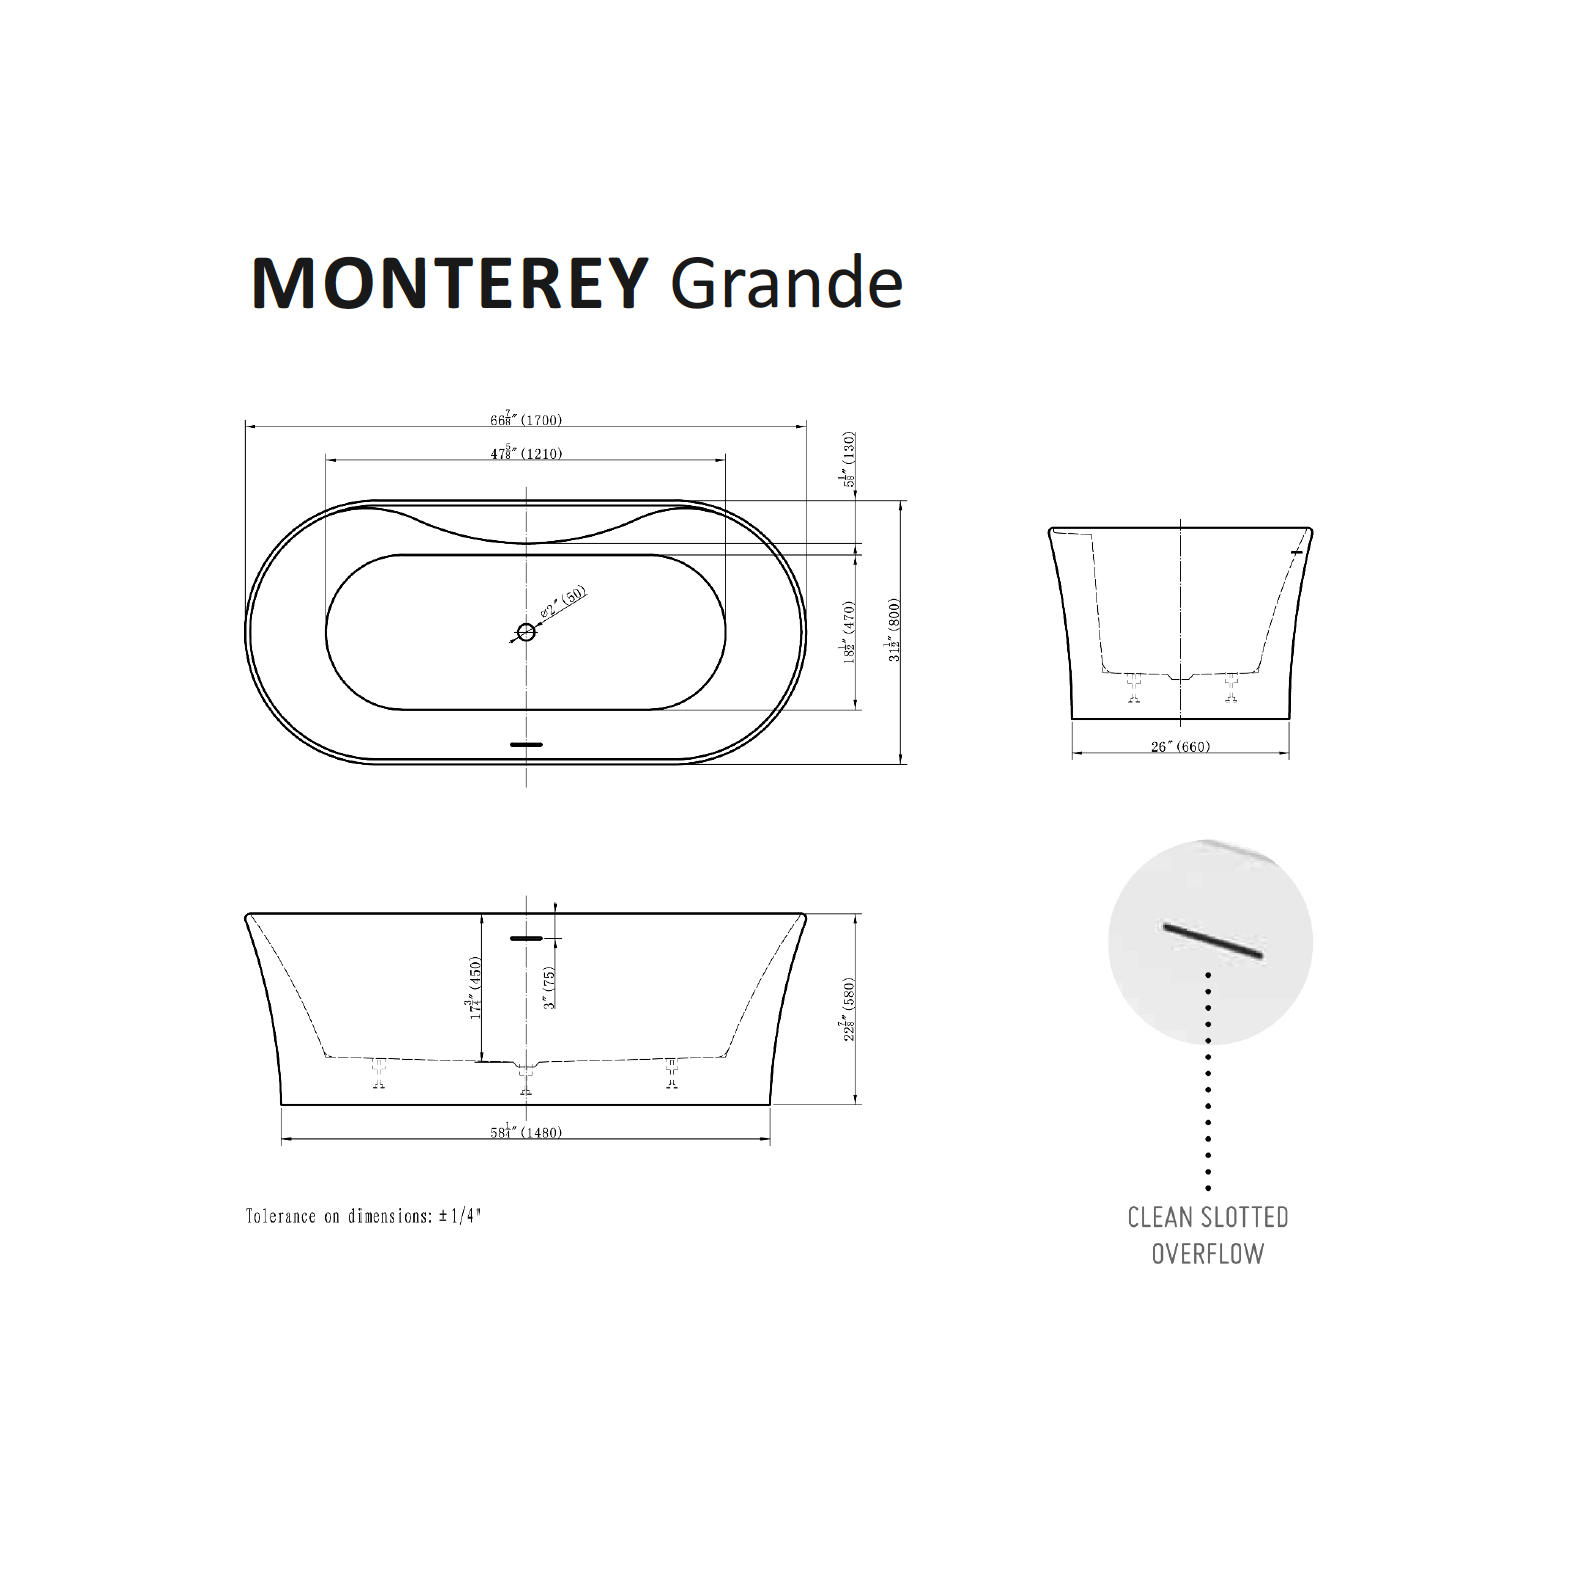 Monterey Grand Tub Specifications